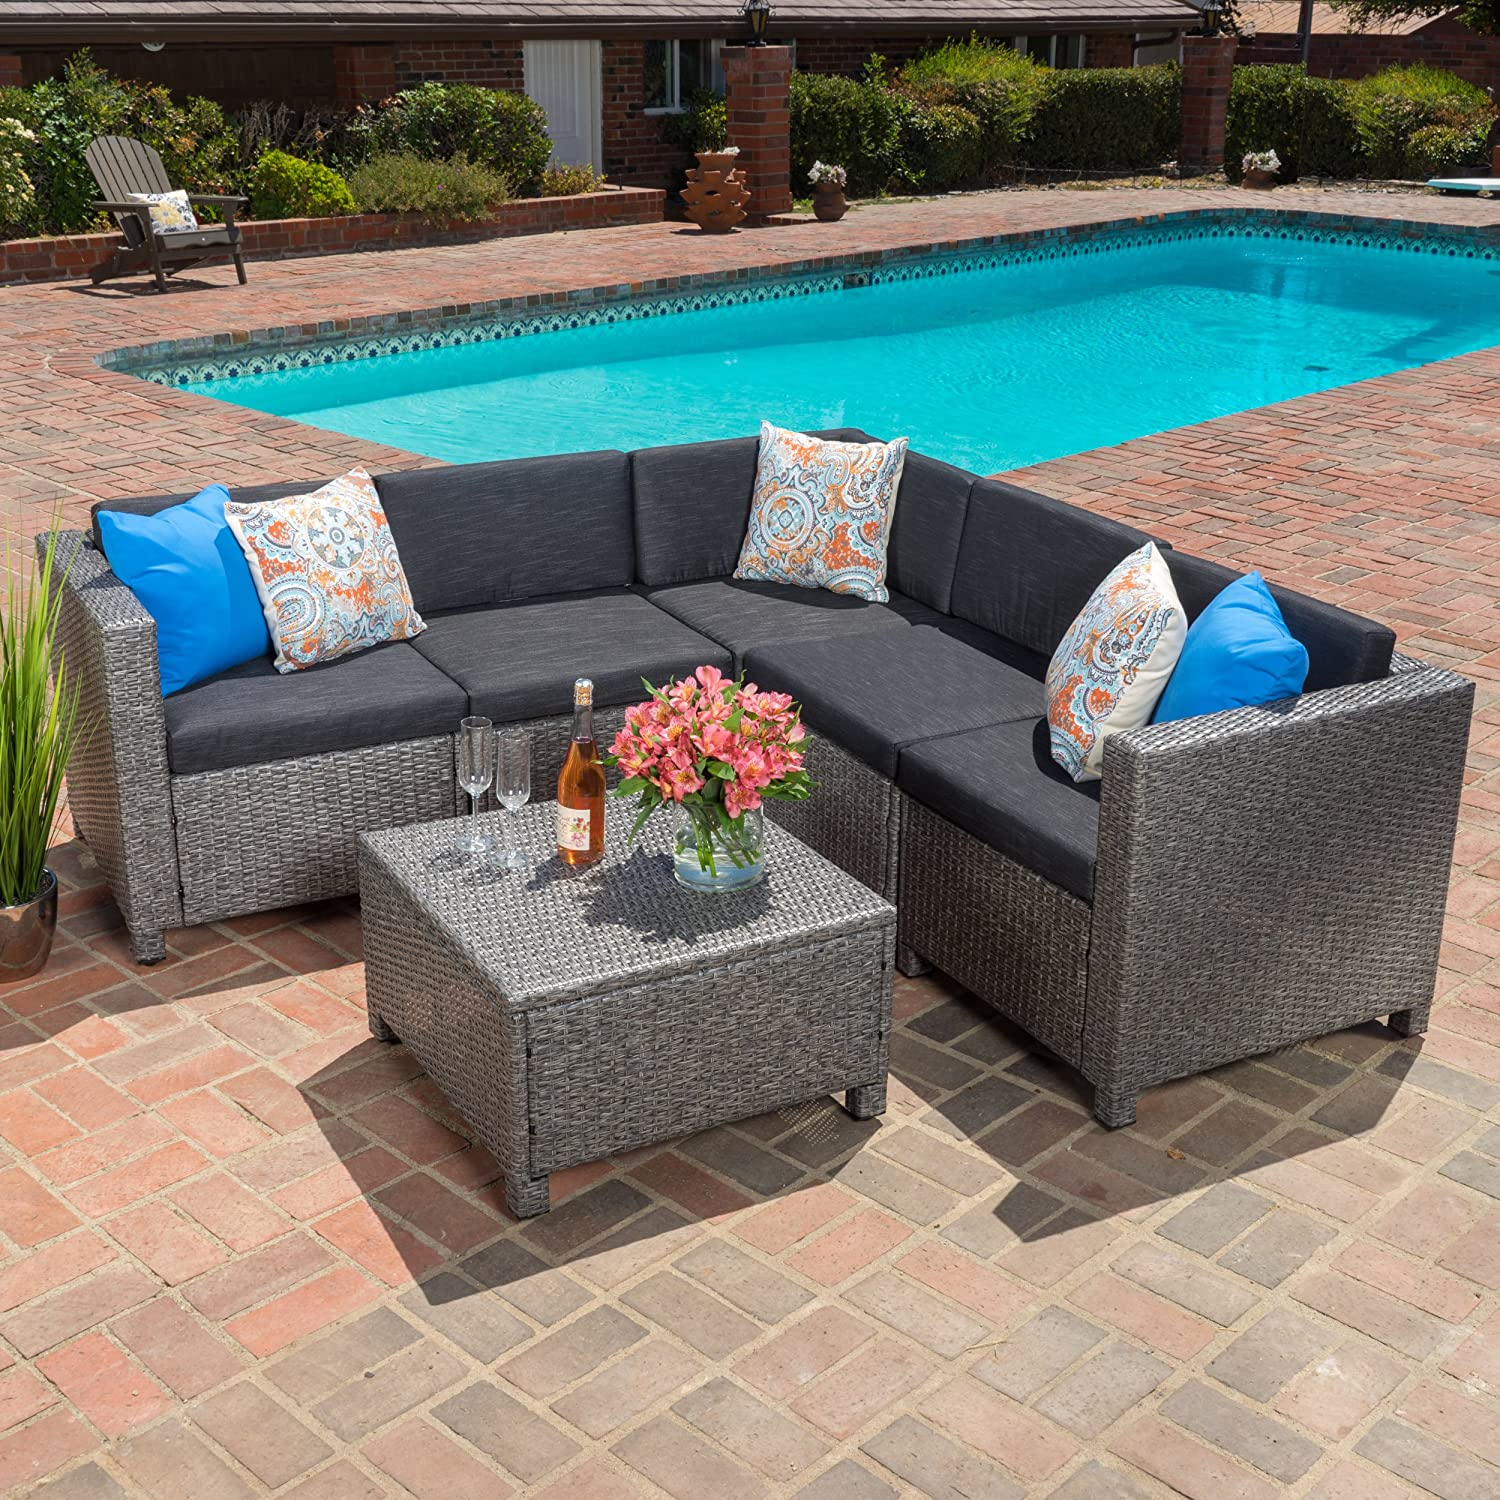 Amazon com venice outdoor patio furniture wicker sectional sofa set w cushions grey and black patio lawn garden